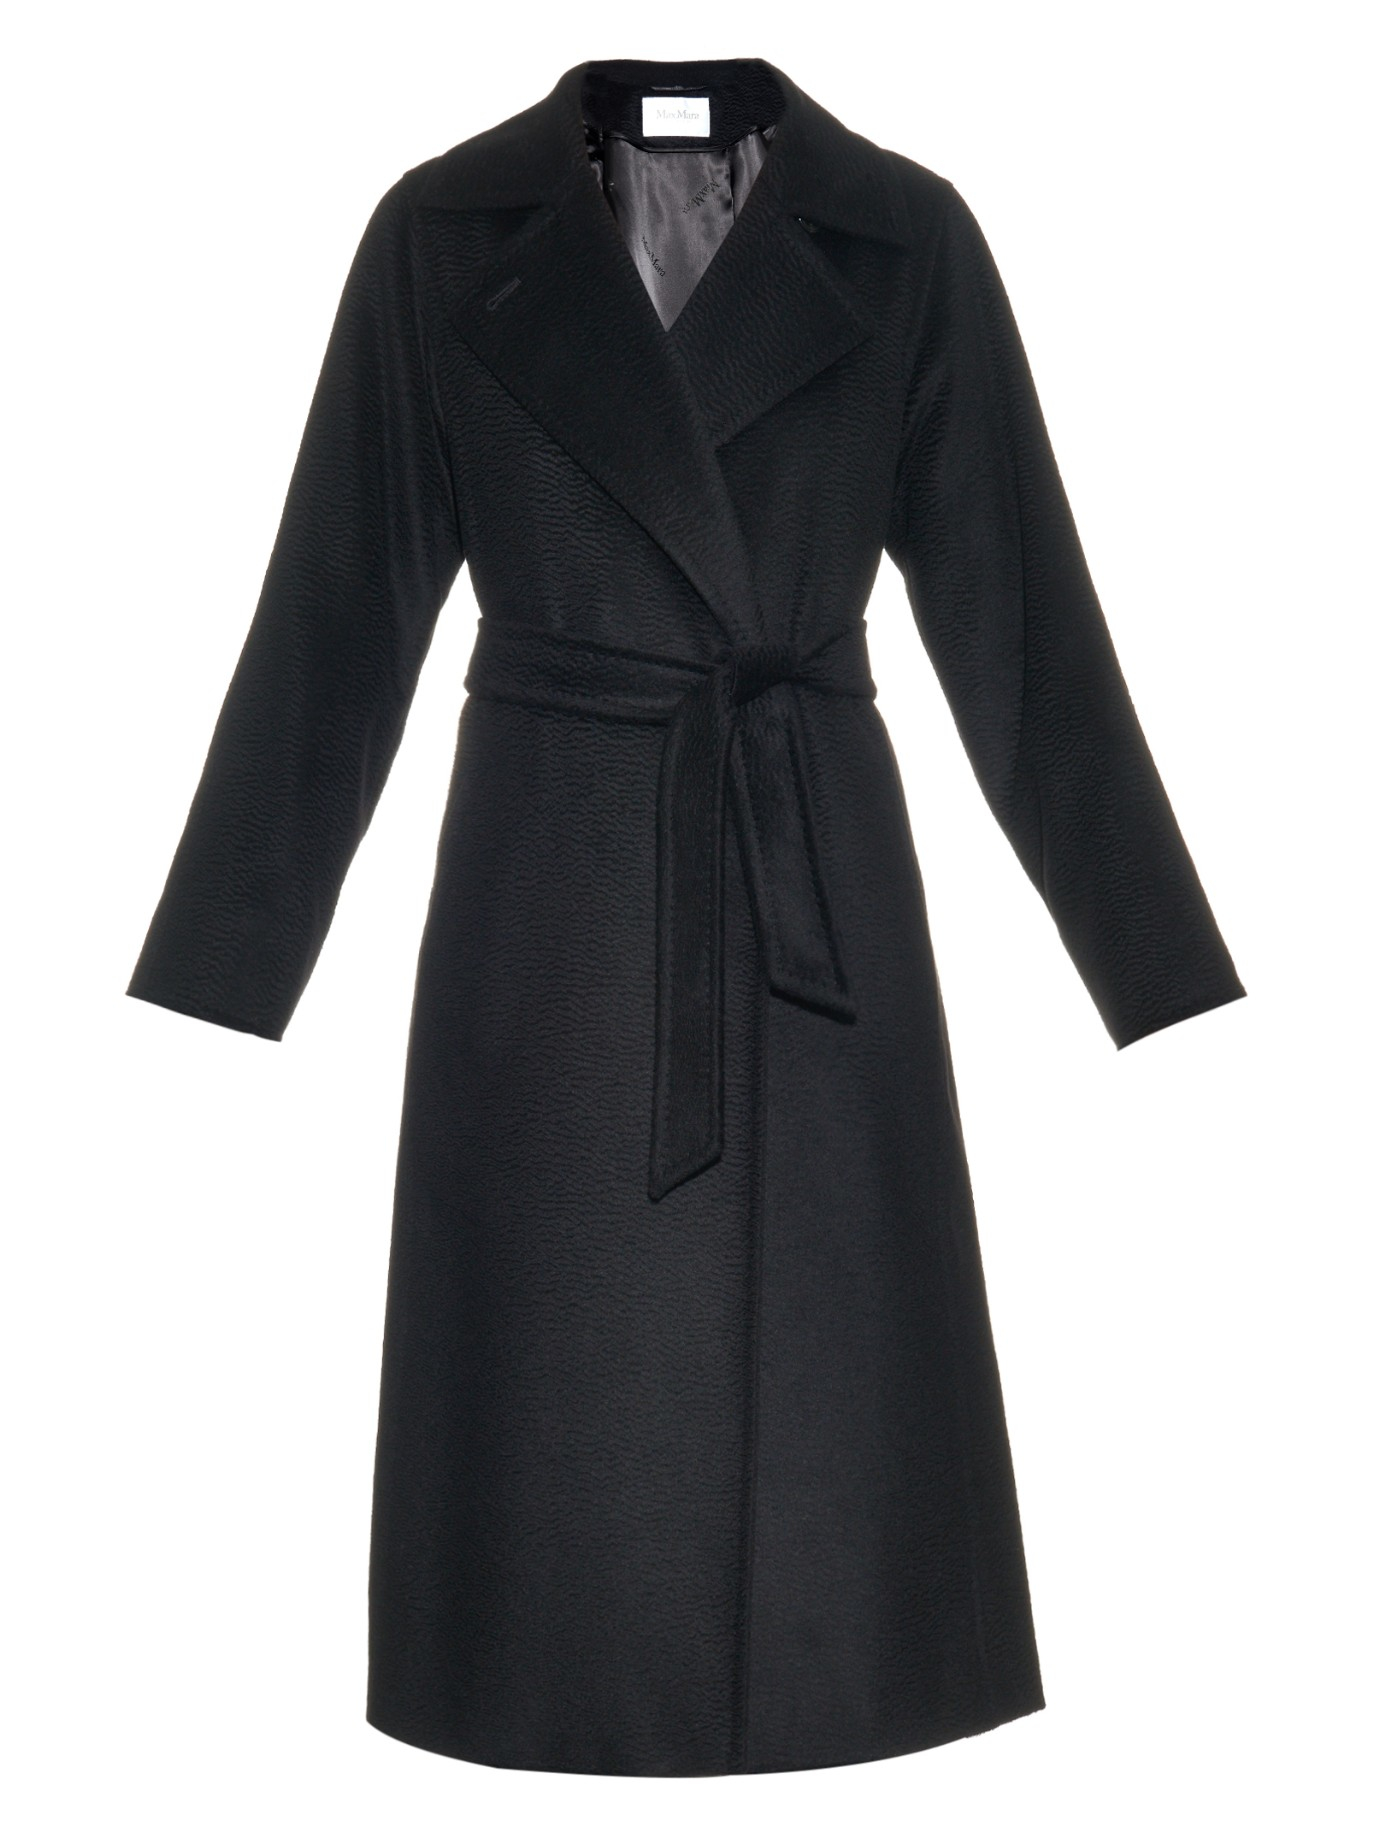 Max mara Manuela Coat in Black